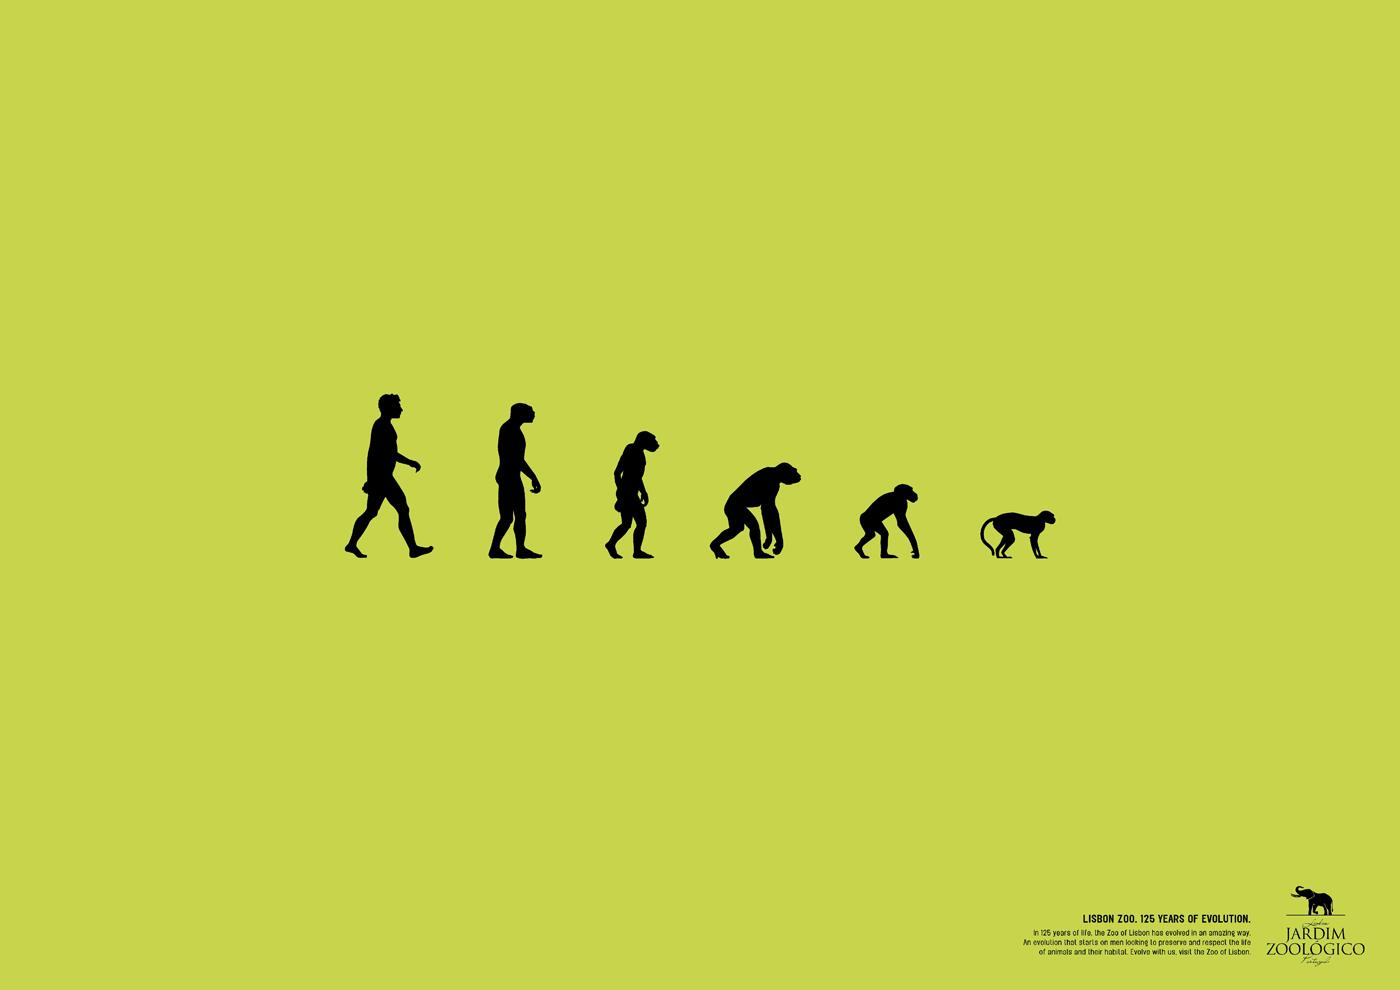 Lisbon Zoo Print Ad -  125 years of evolution, 2